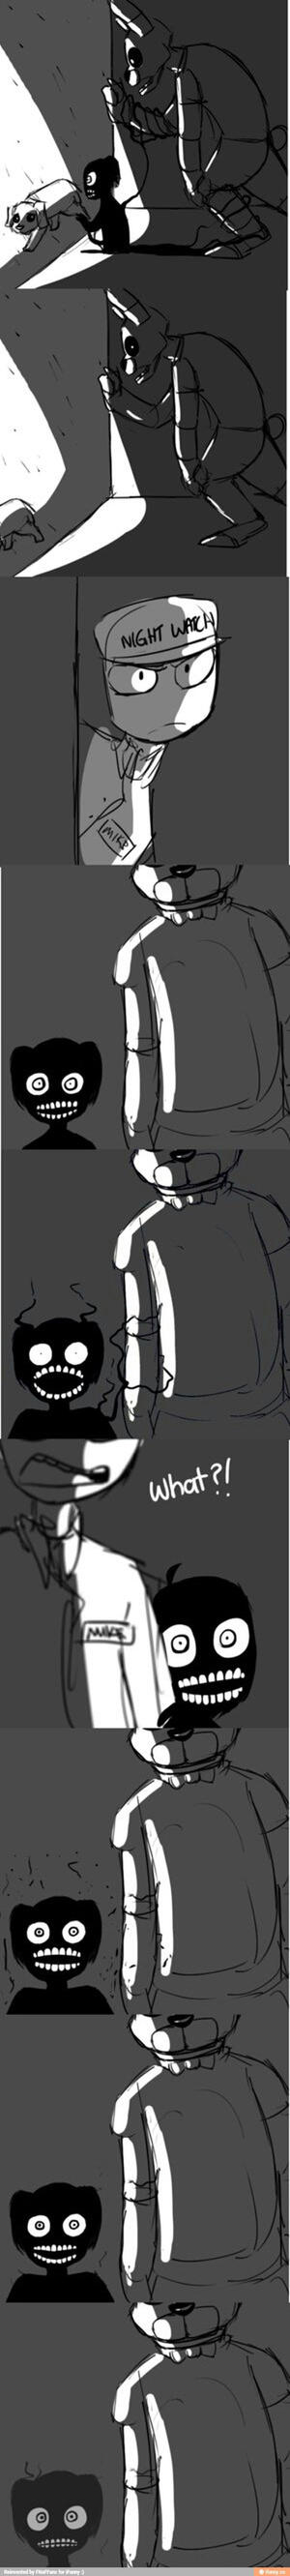 Fnaf Comic 5 by Mike-love-Smidcht